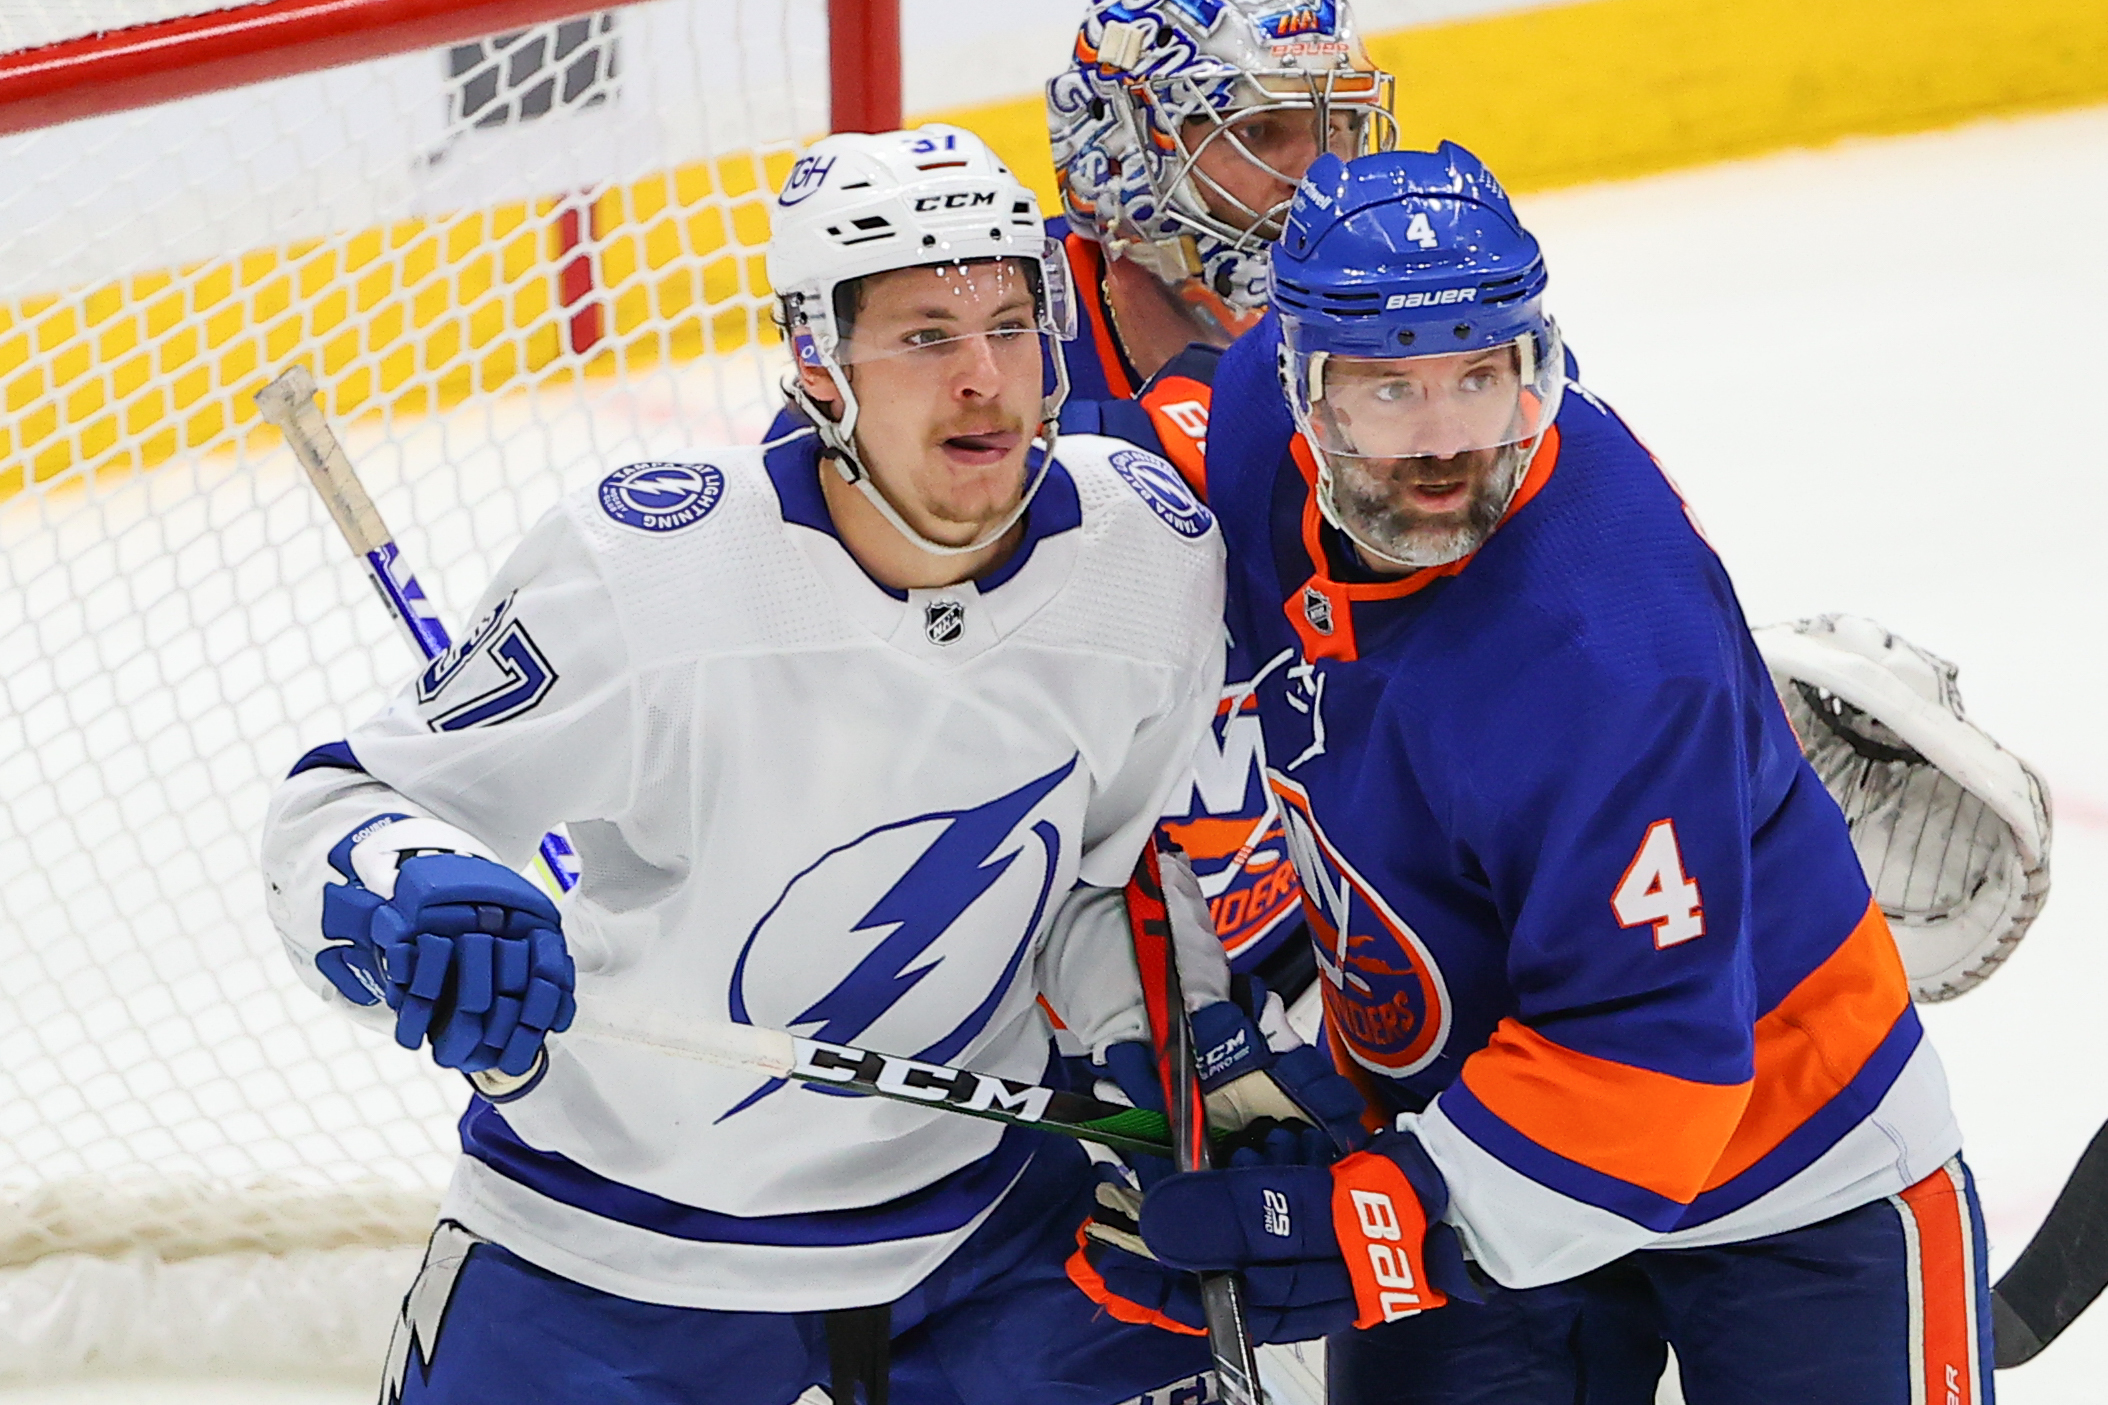 Tampa Bay Lightning center Yanni Gourde (37) battles New York Islanders defenseman Andy Greene (4) during the third period of the National Hockey League Stanley Cup Playoff Semifinal game between the New York Islanders and the Tampa Bay Lightning on June 17,2021 at Nassau Veterans Memorial Coliseum in Uniondale,NY.